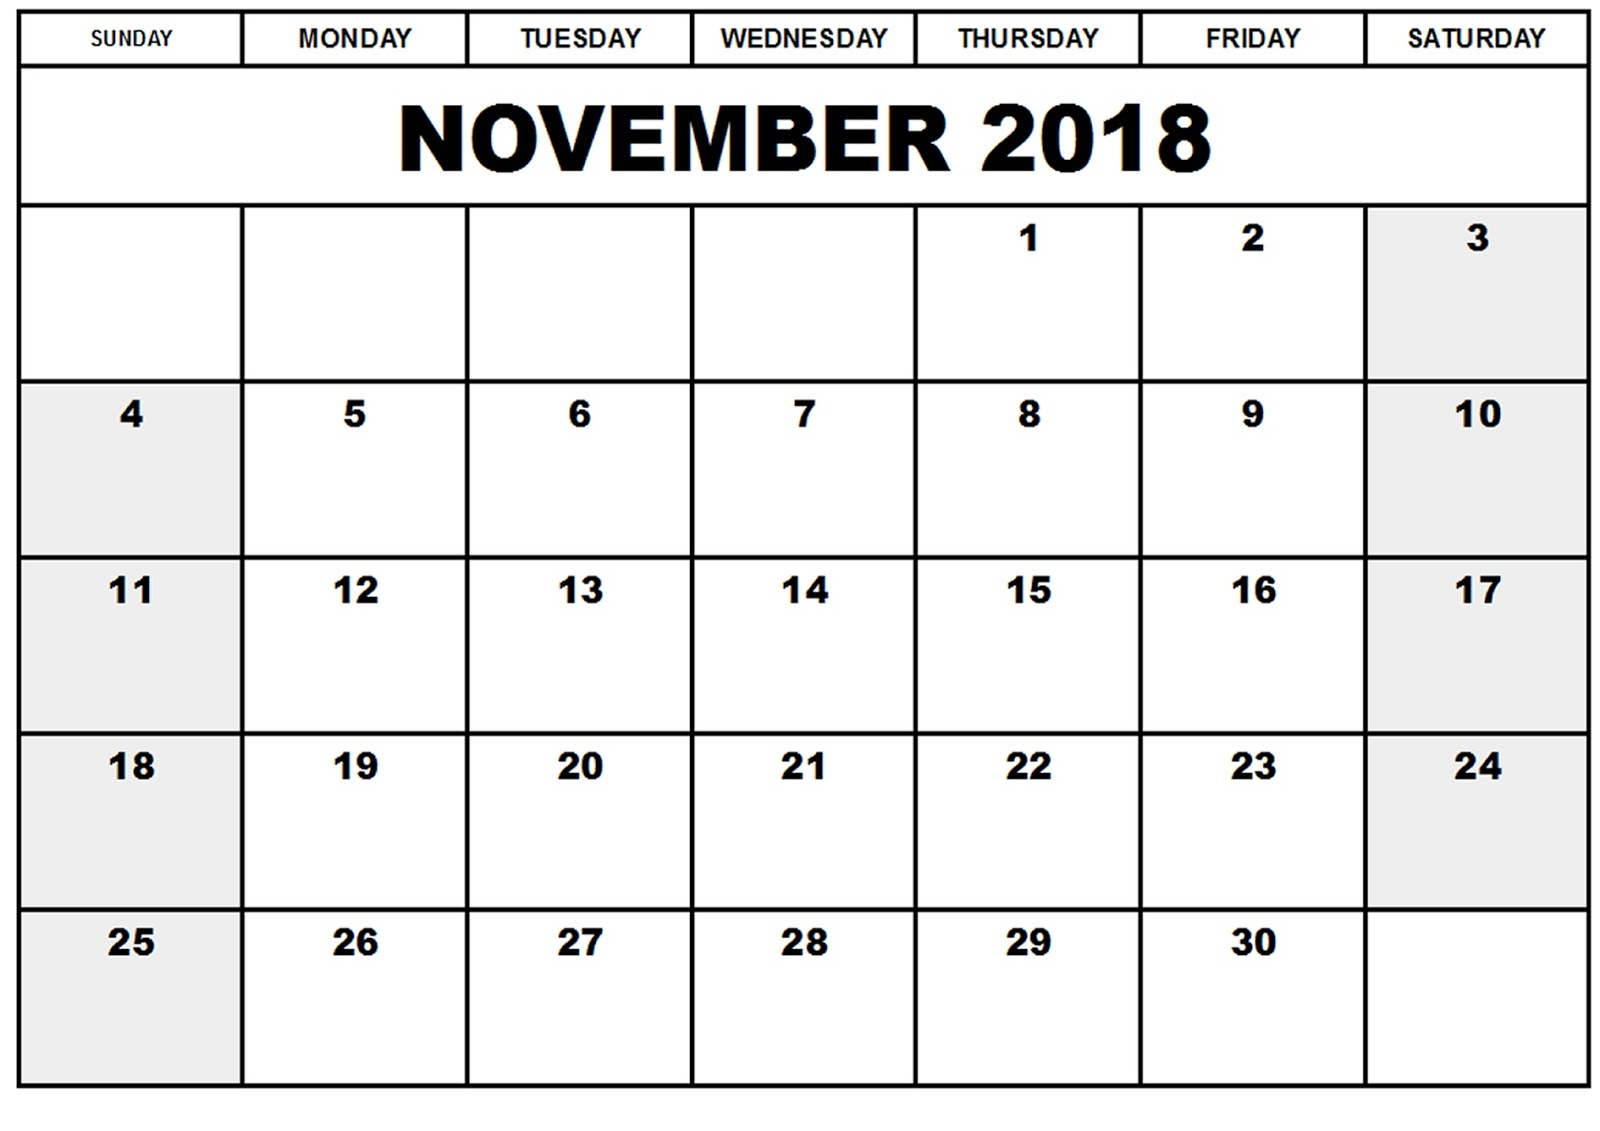 November 2018 Printable Calendar Templates within Blank Calendar Template November